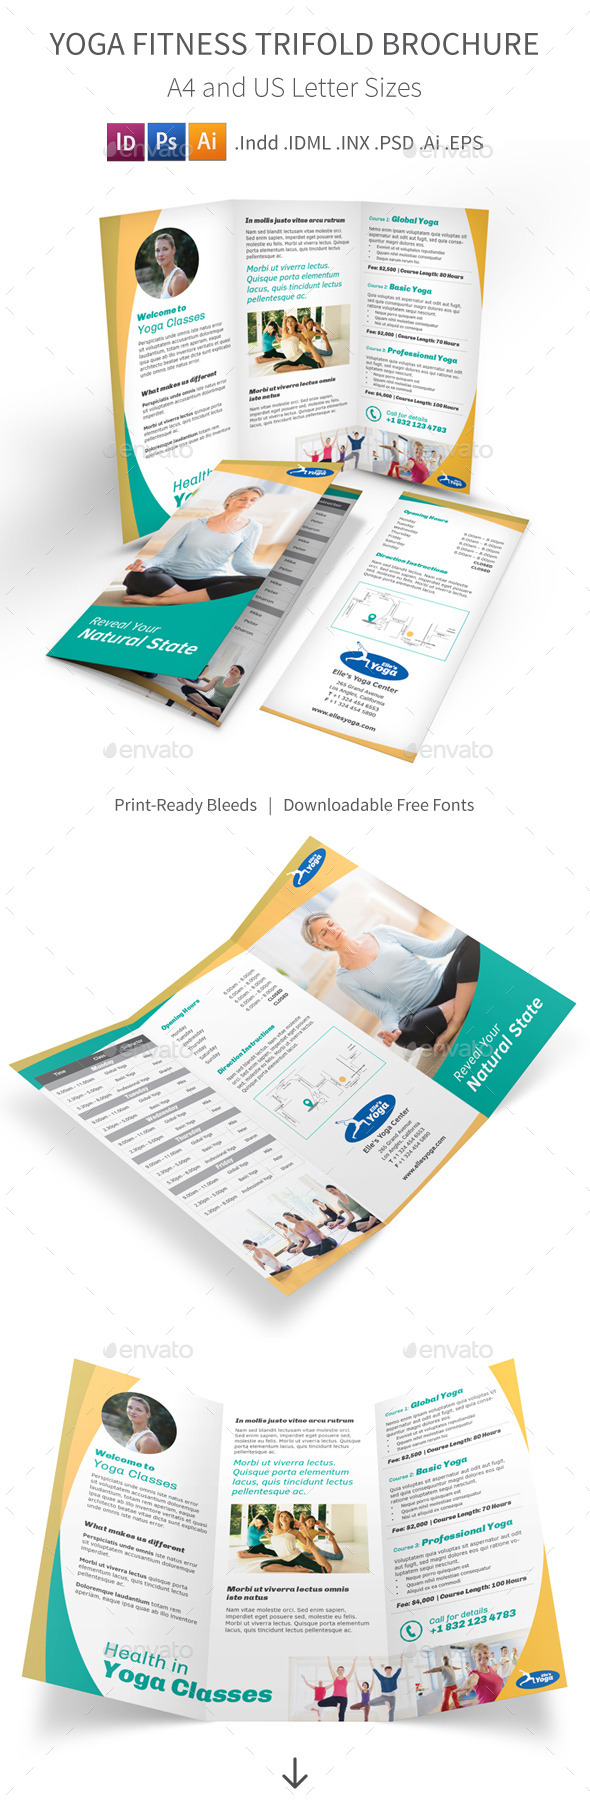 Yoga Fitness Trifold Brochure - Informational Brochures